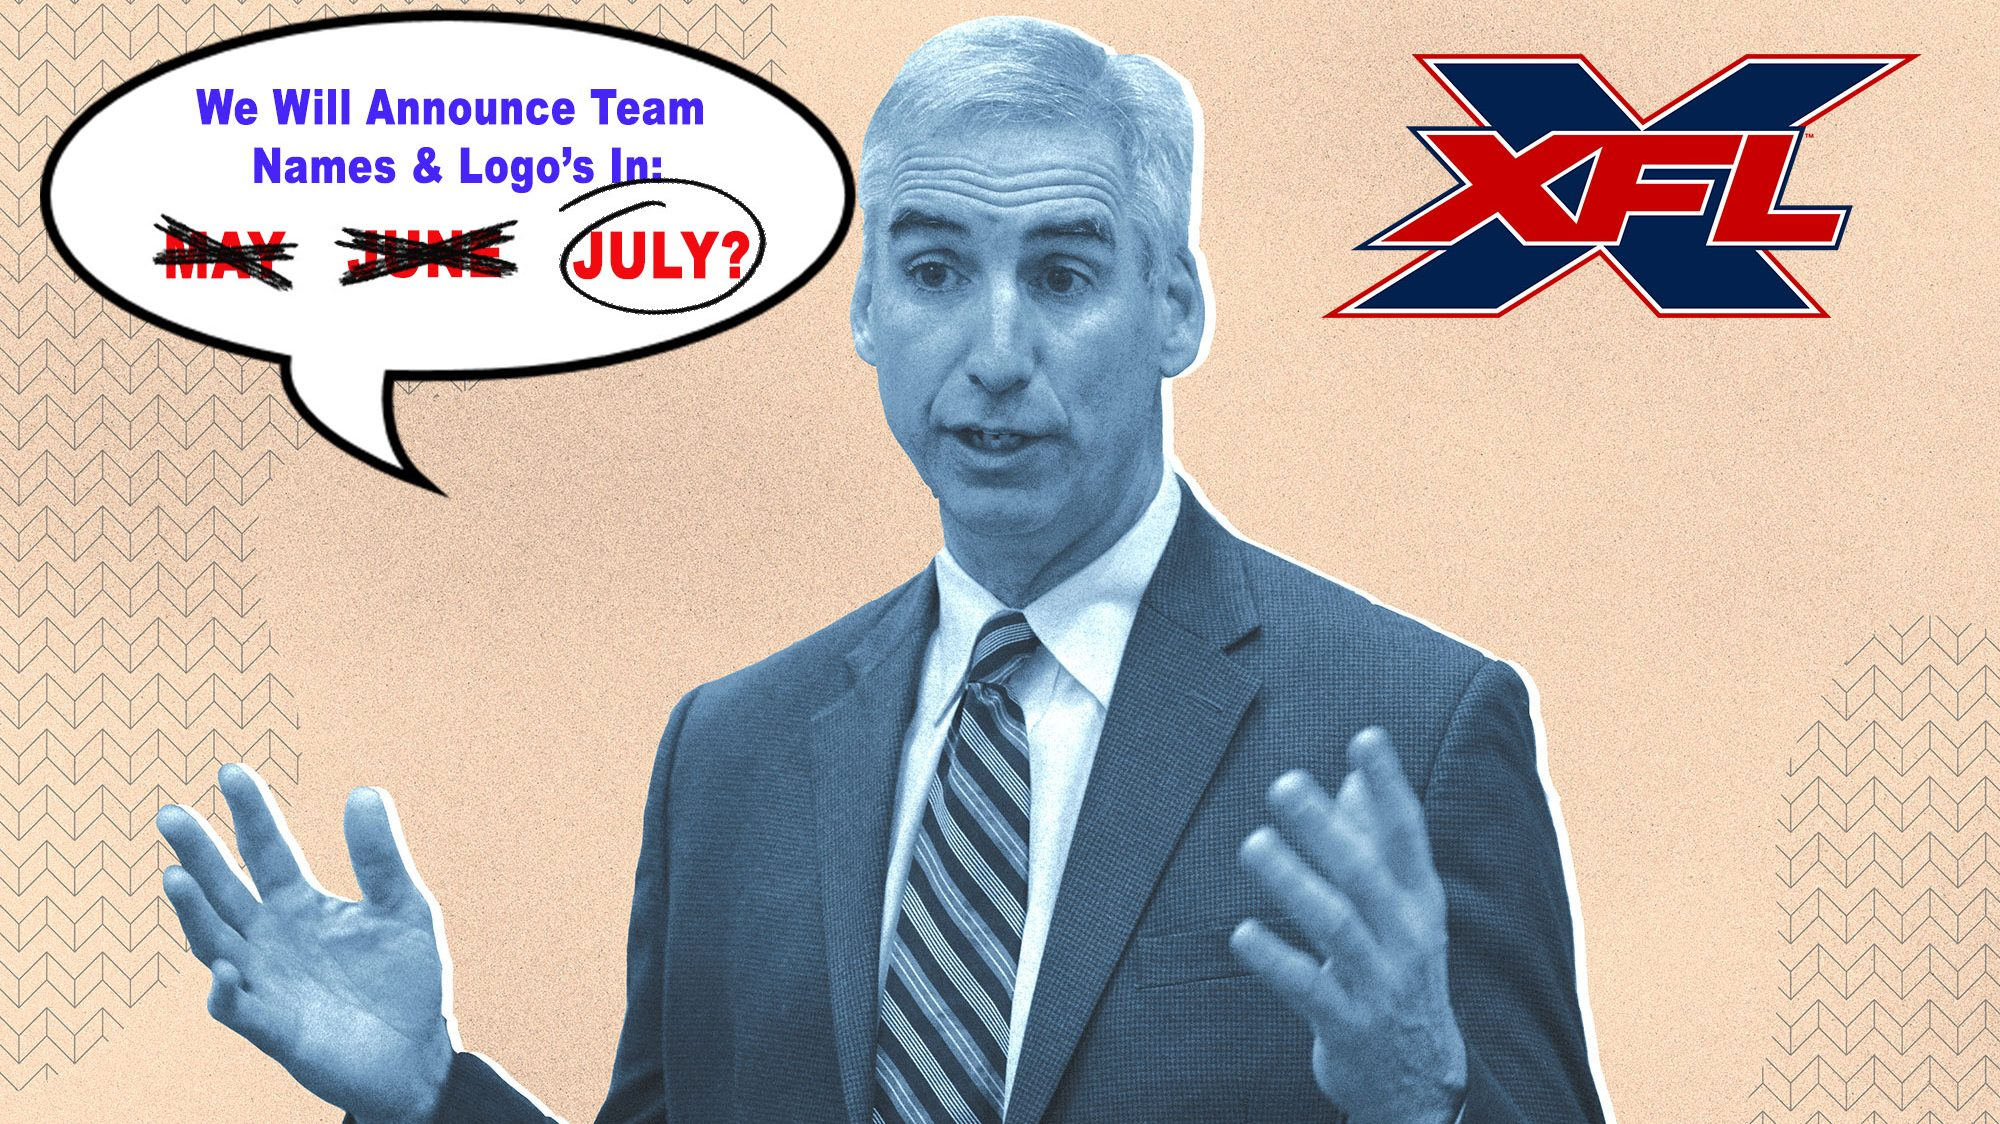 Fan Frustration Over Lack Of XFL Team Names